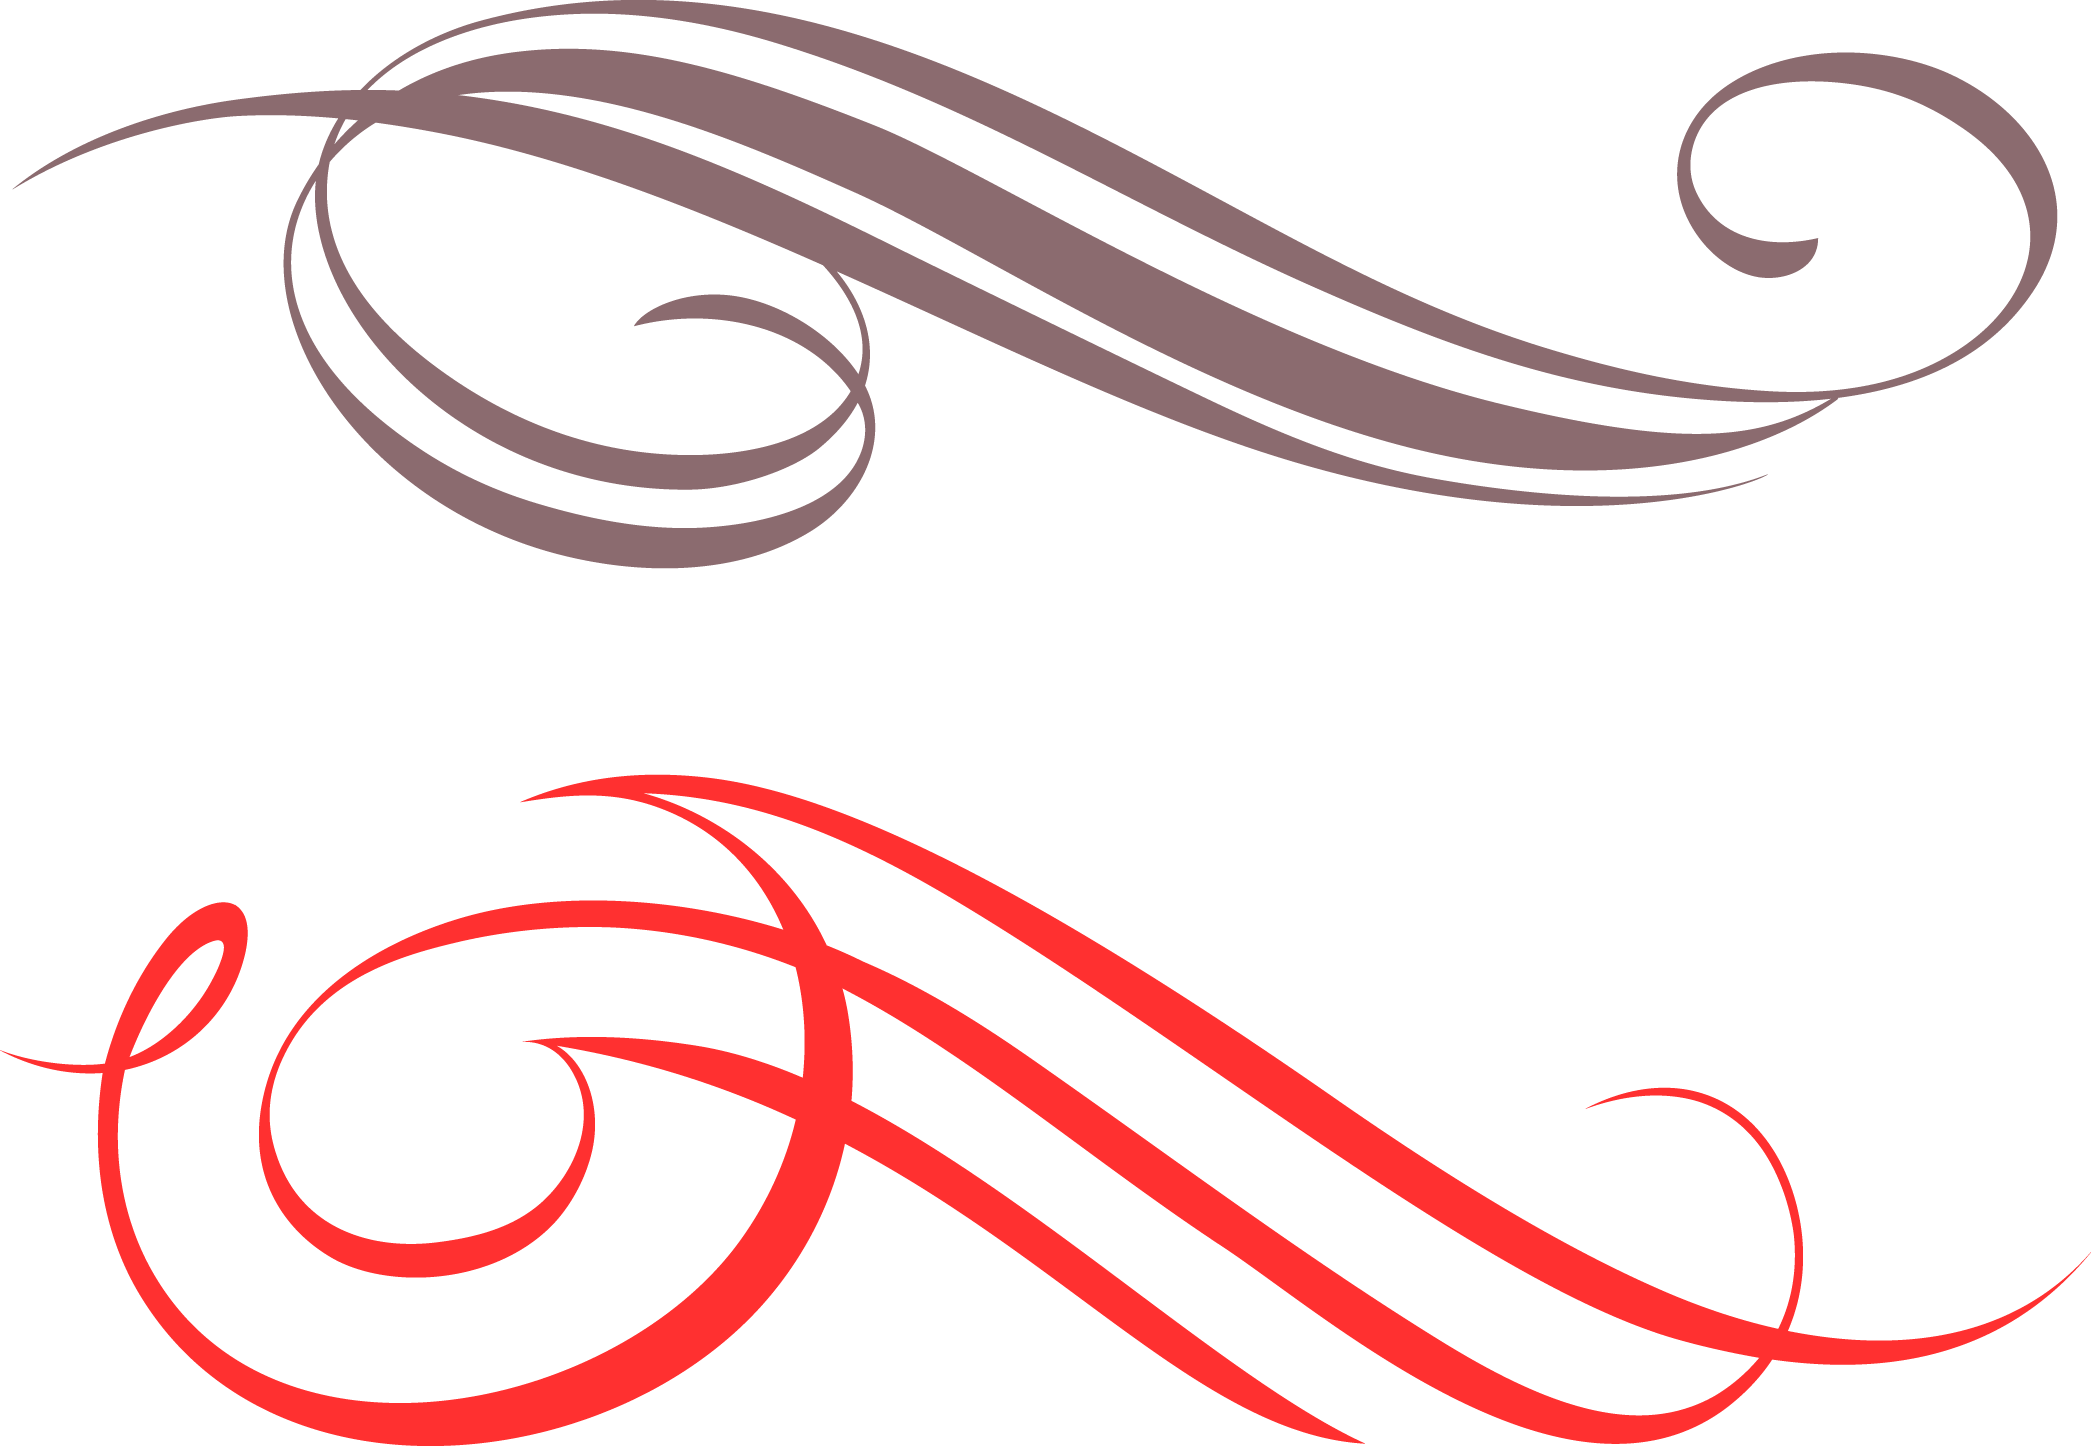 Vector underline calligraphy. Collection of free curving